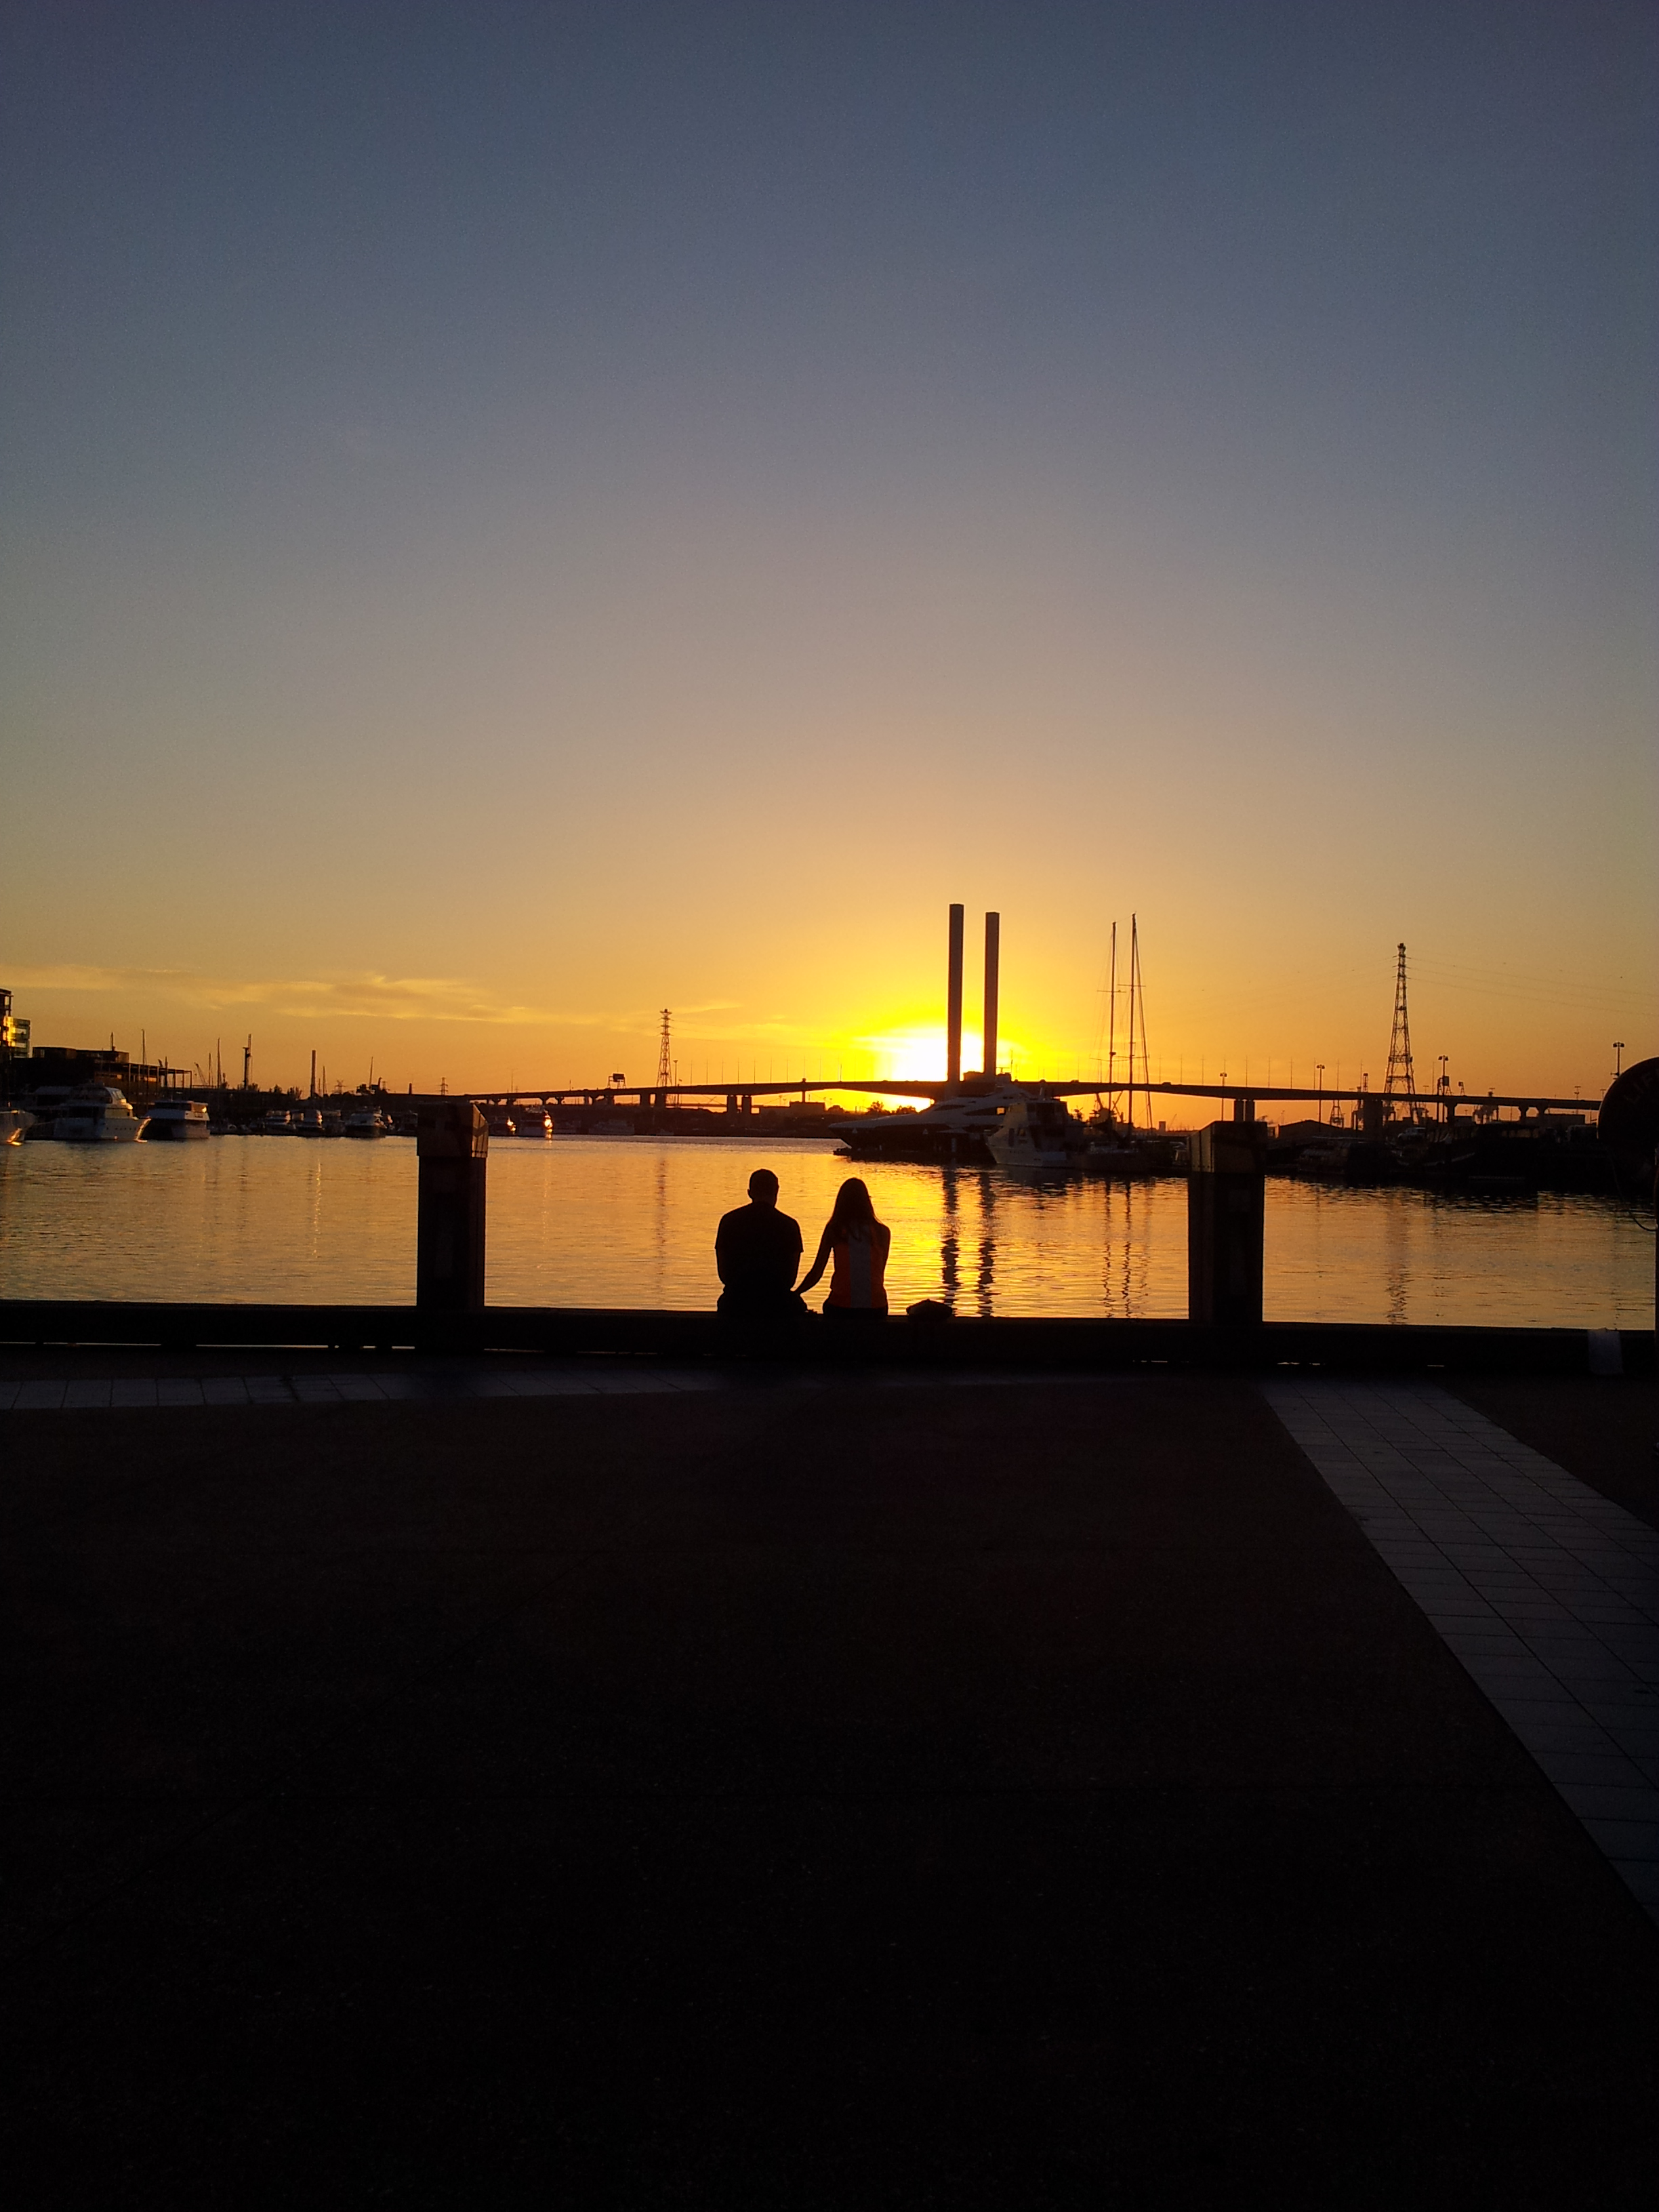 2. Watching sunset over the Bolte Bridge.